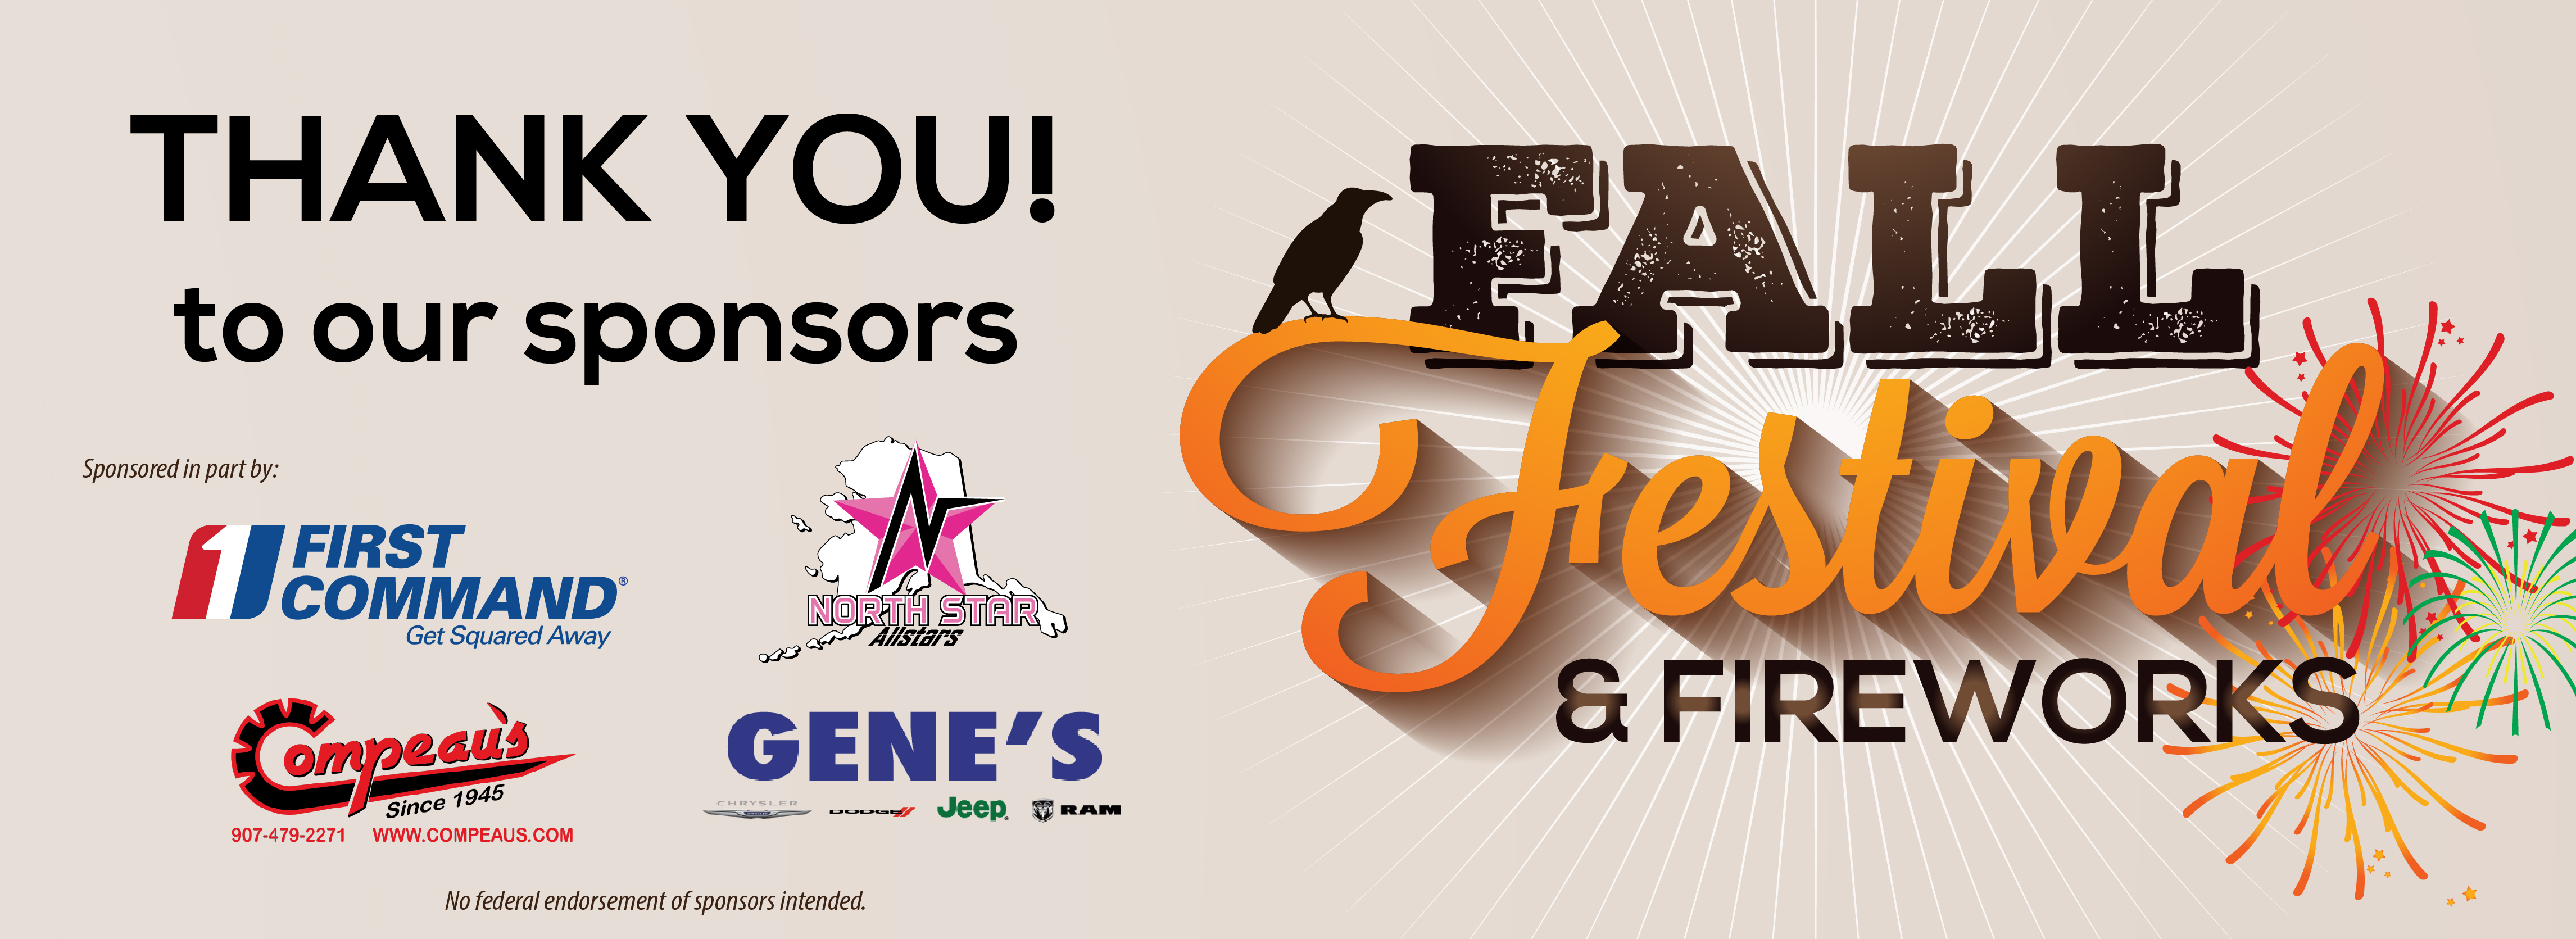 1 NOV Fall Festival Sponsors Thank You Web Banner 01